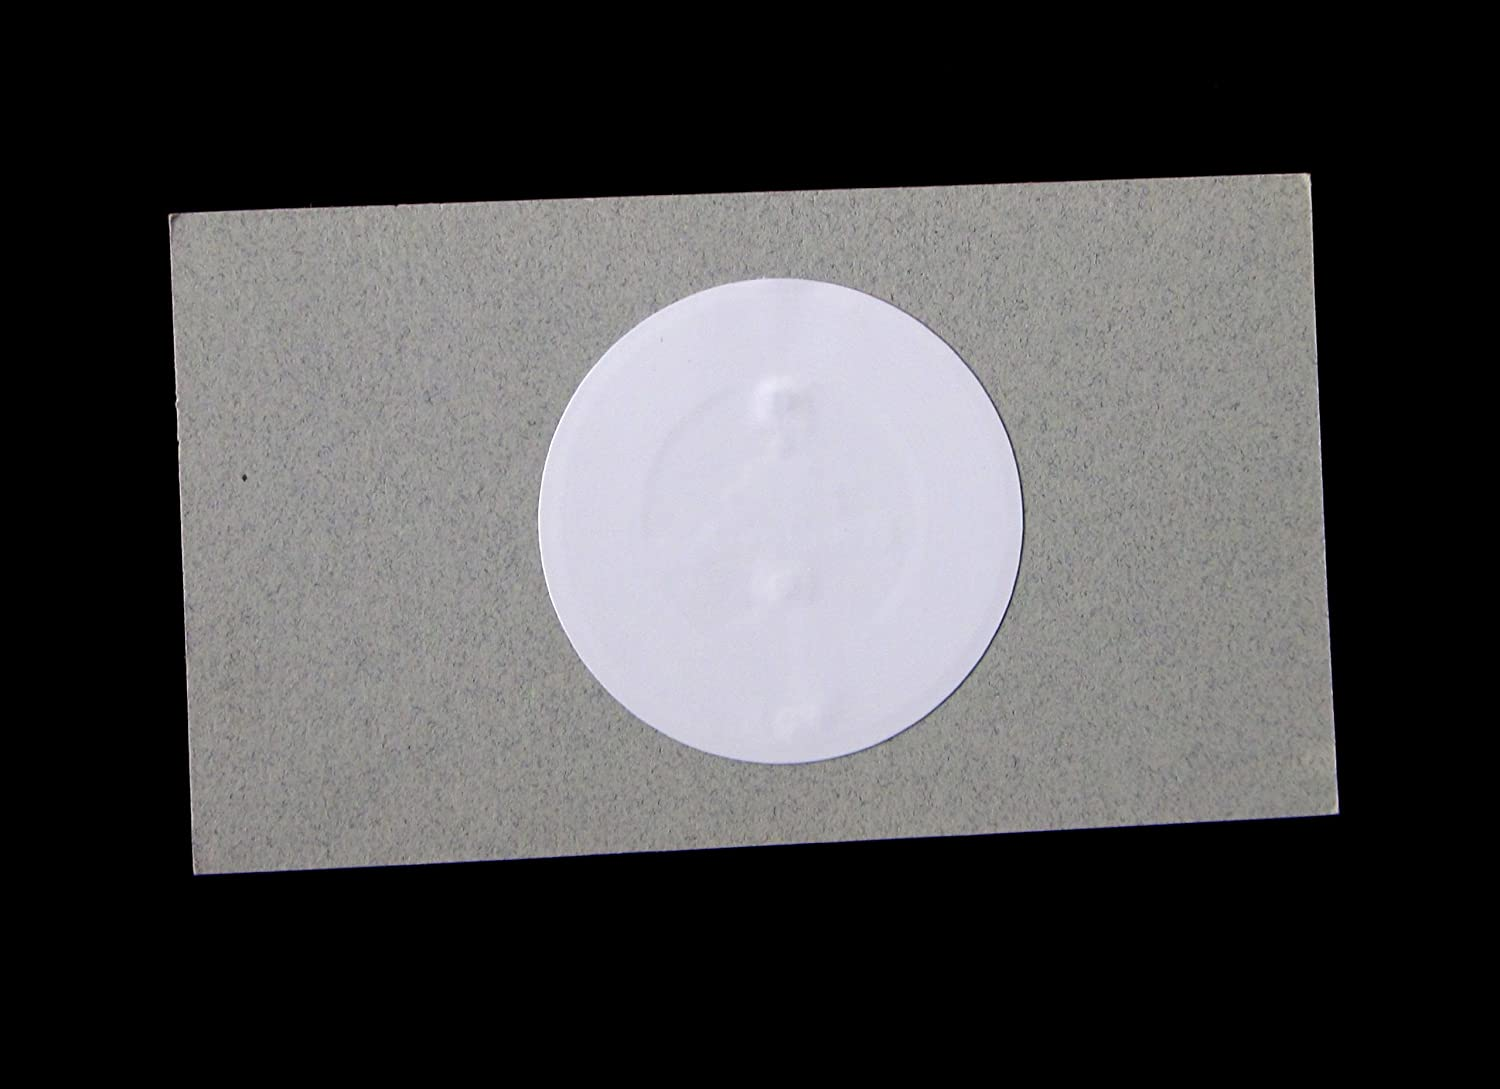 Amazon.com: NFC Business Card Tags - White, Round, Unprogrammed, 4K ...